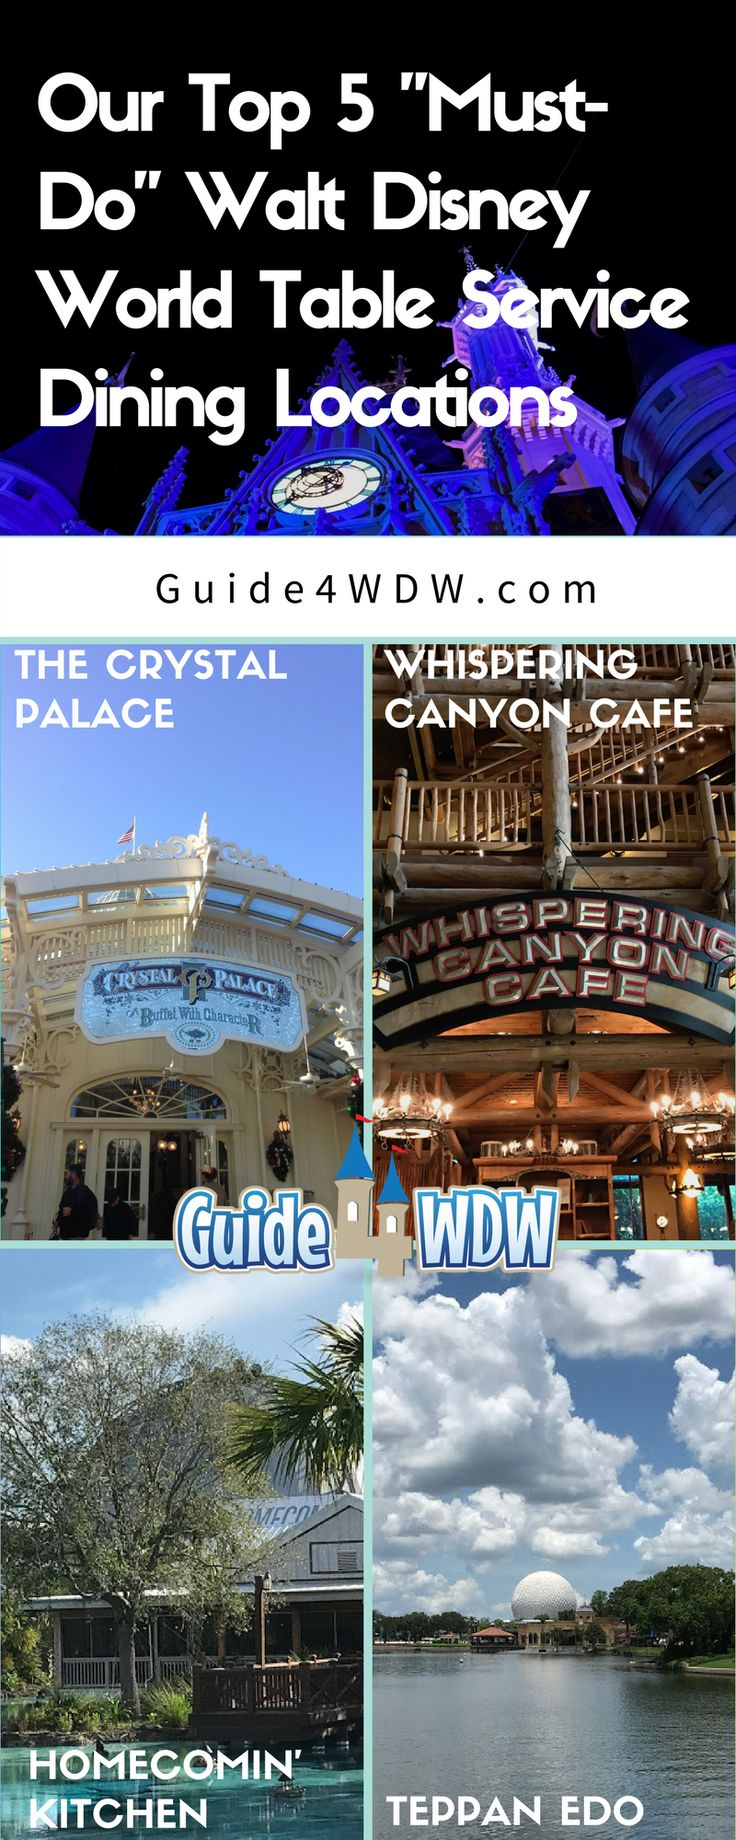 """Today, as we share one of our many Disney tips and tricks to dining at and around Walt Disney World, we're taking you through our top 5 (4 pictured) """"Must-Do"""" Disney table service restaurant offerings. Did your favorite make our list???"""